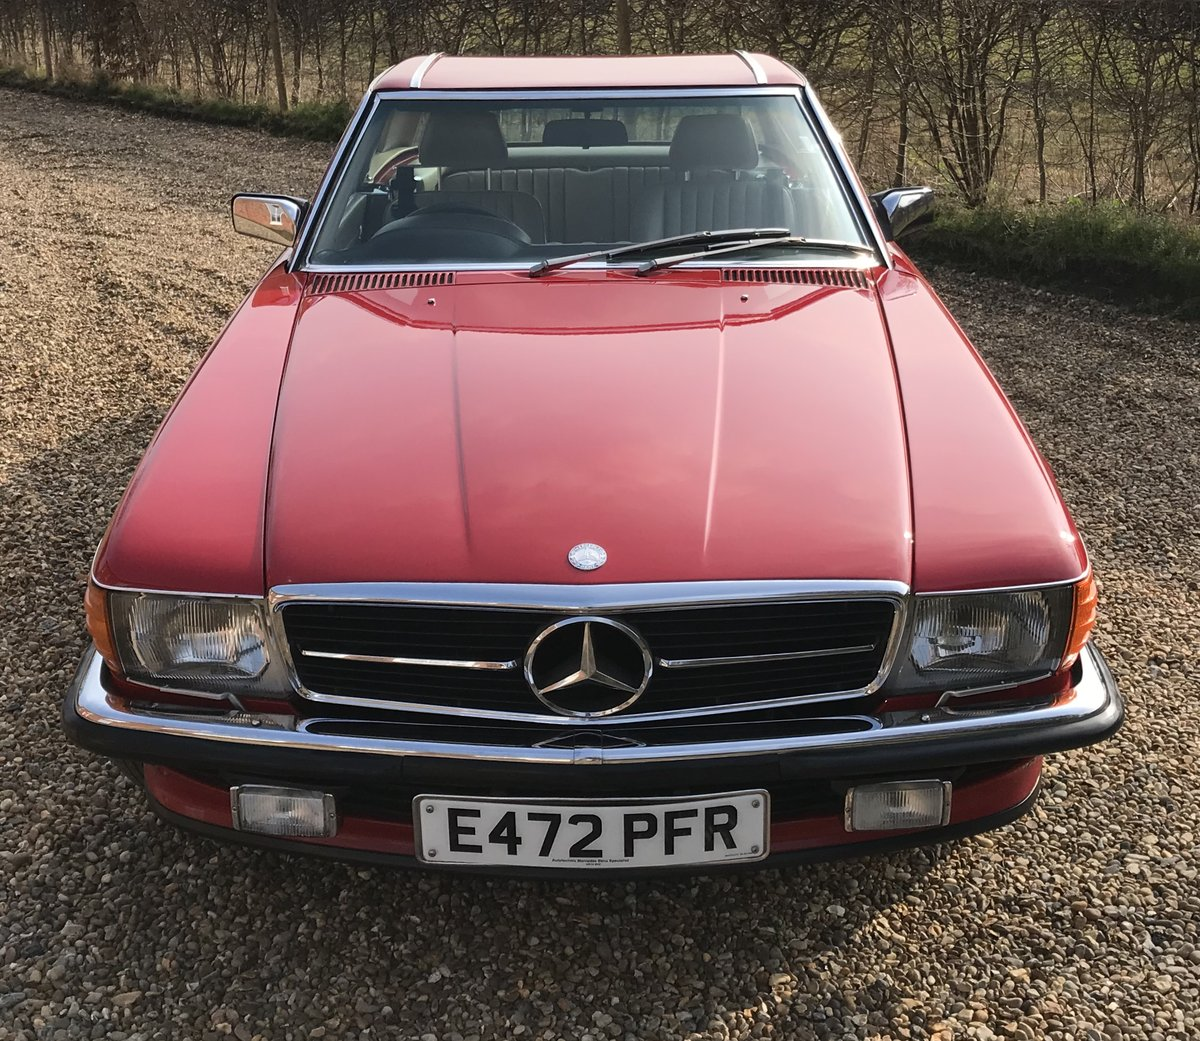 Exceptional 1987 500 SL Mercedes Benz 107 For Sale (picture 2 of 6)